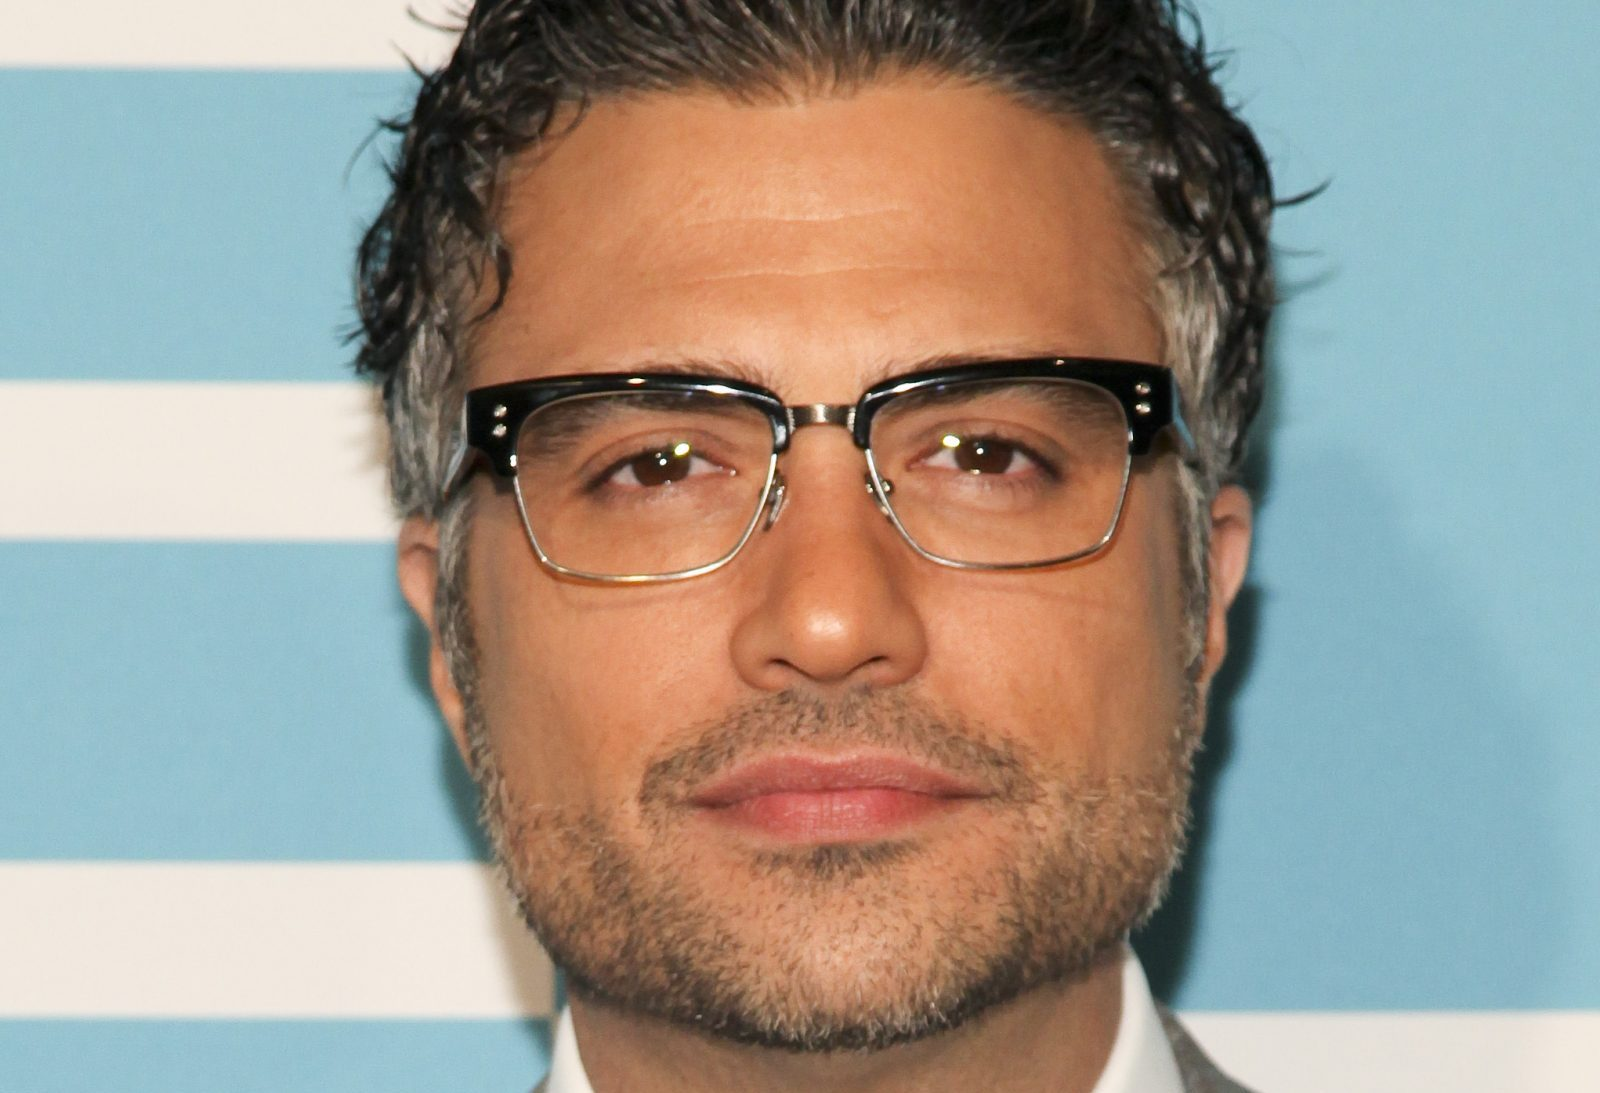 Jaime Camil attends The CW Network 2015 Programming Upfront Presentation at The London Hotel on Thursday, May 14, 2015, in New York. (Photo by Andy Kropa/Invision/AP)